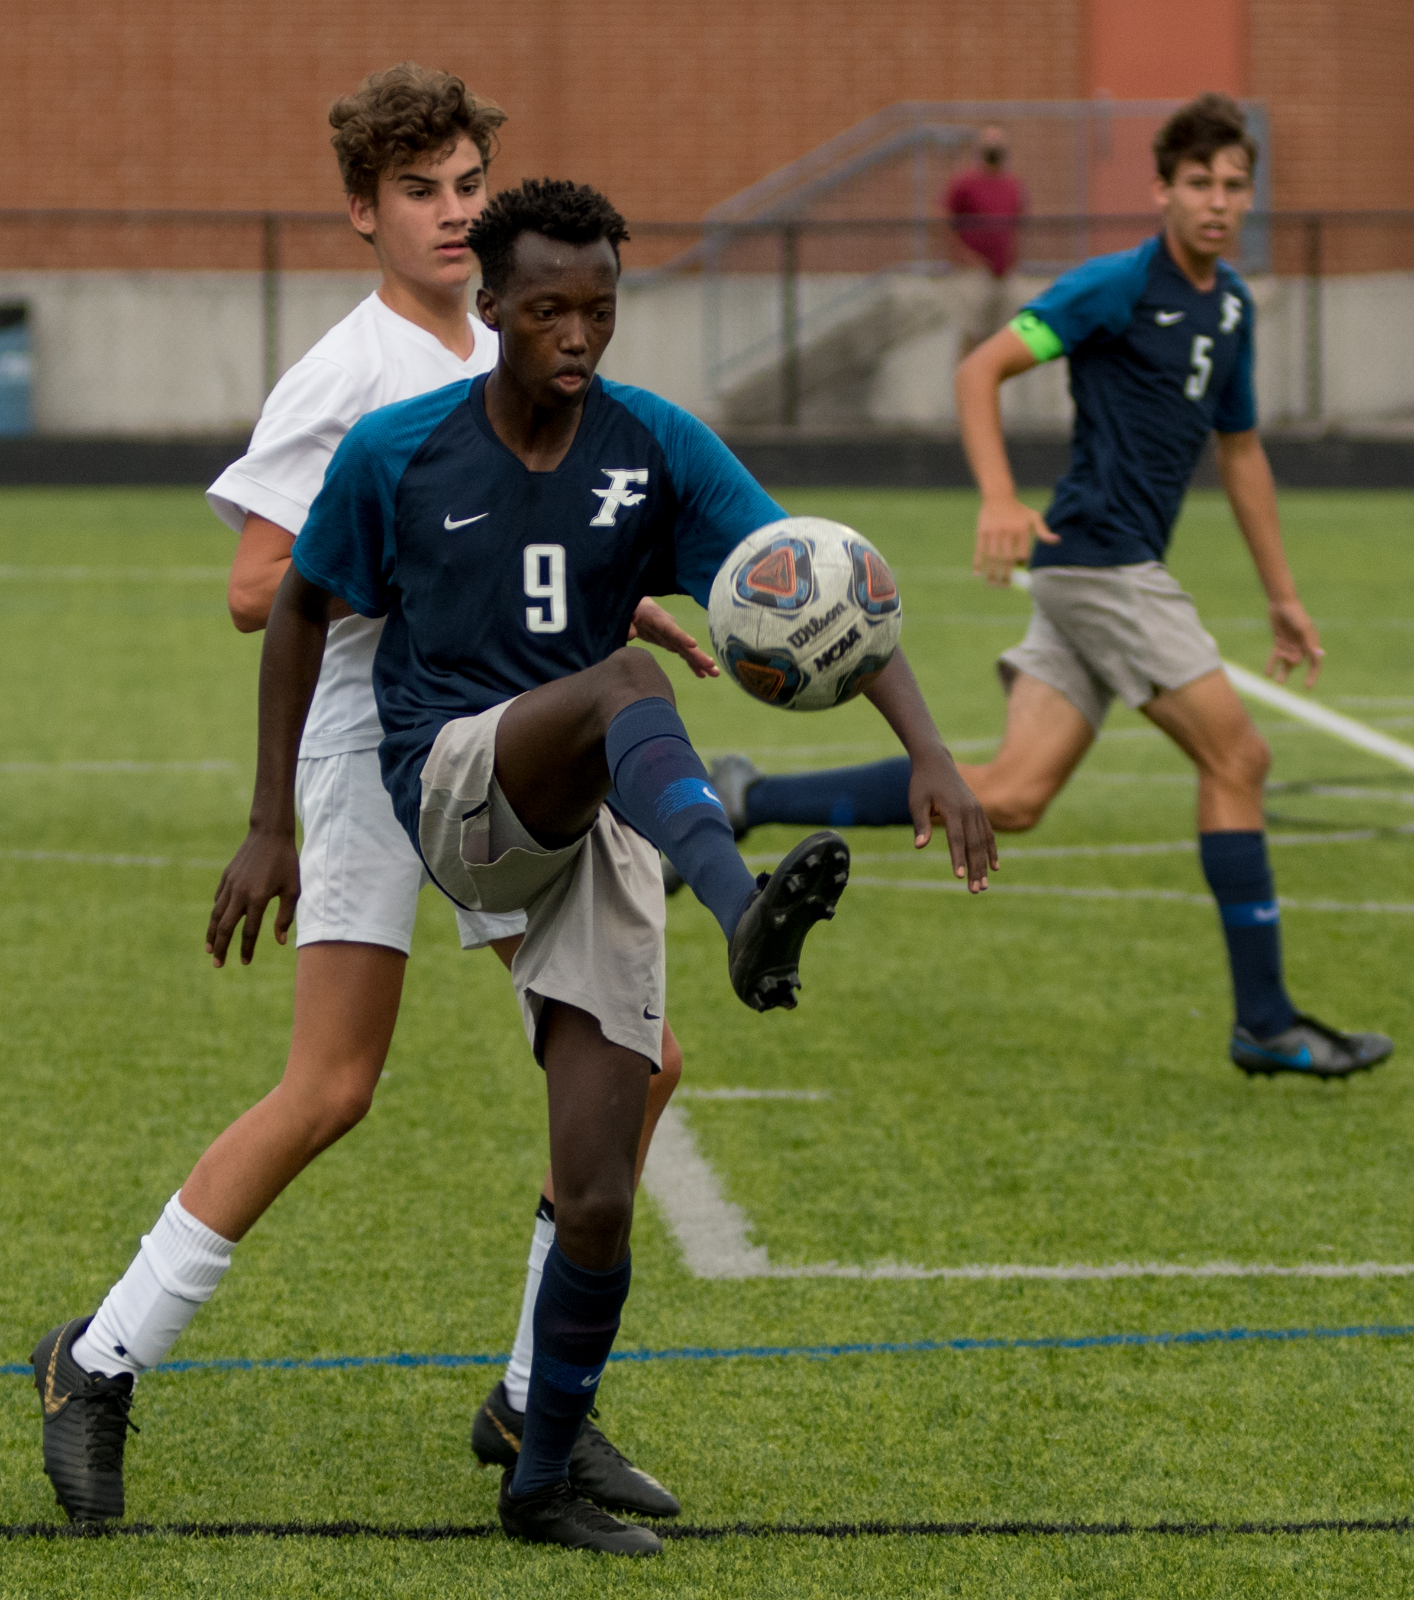 Photo Highlights from Fairmont Men's Varsity Soccer vs. Springfield 9-1-2020